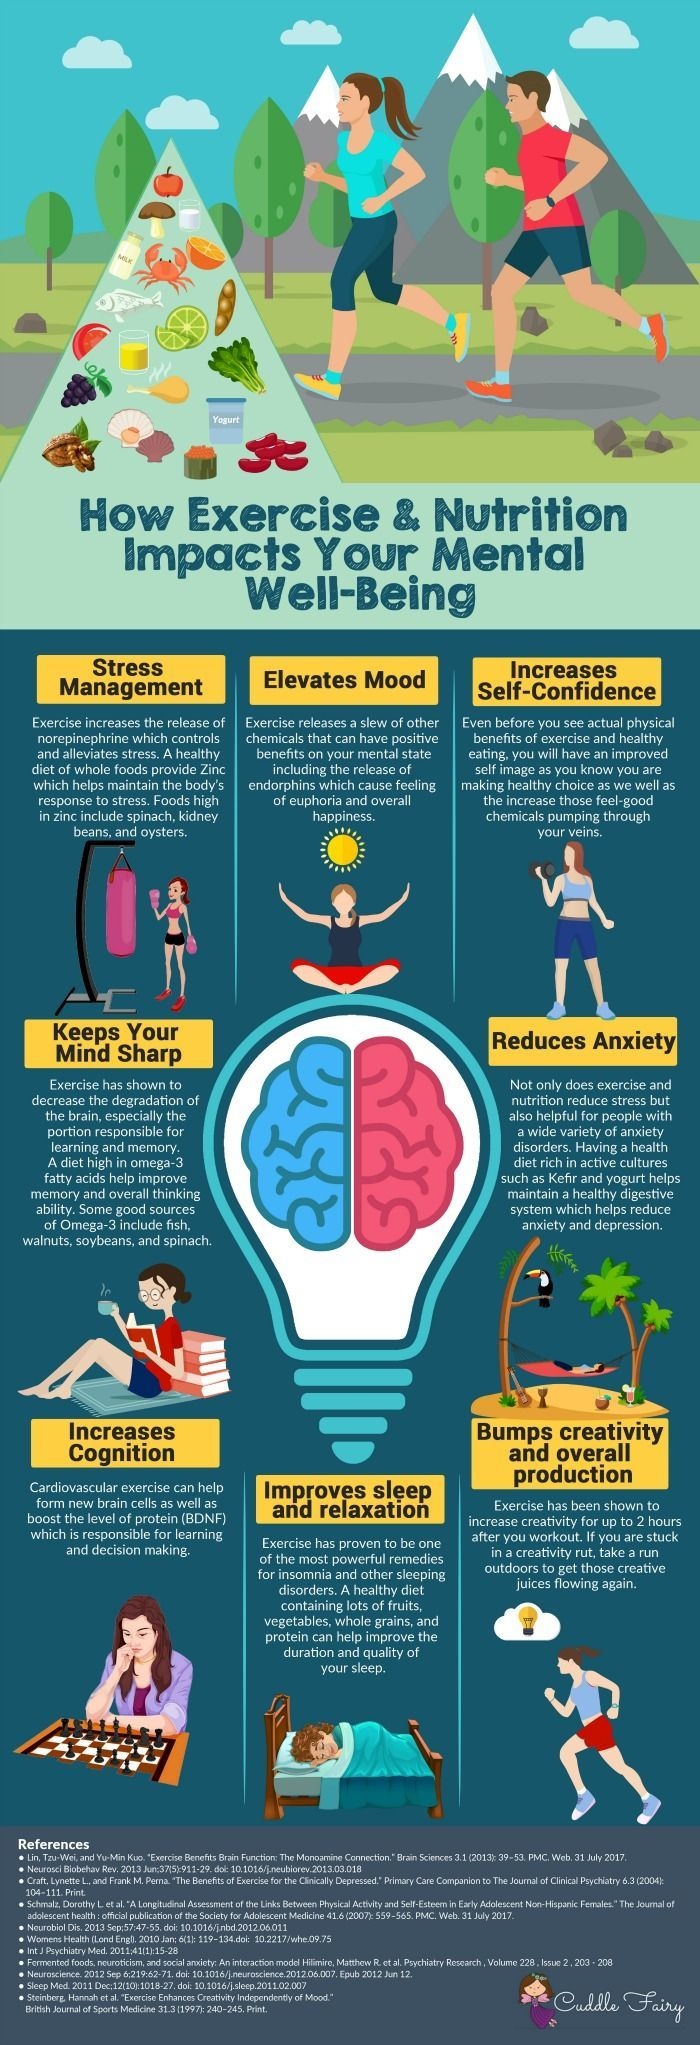 How Exercise & Nutrition Impacts Your Mental Well-Being #Fitness #Infographic #Health #clubfitness